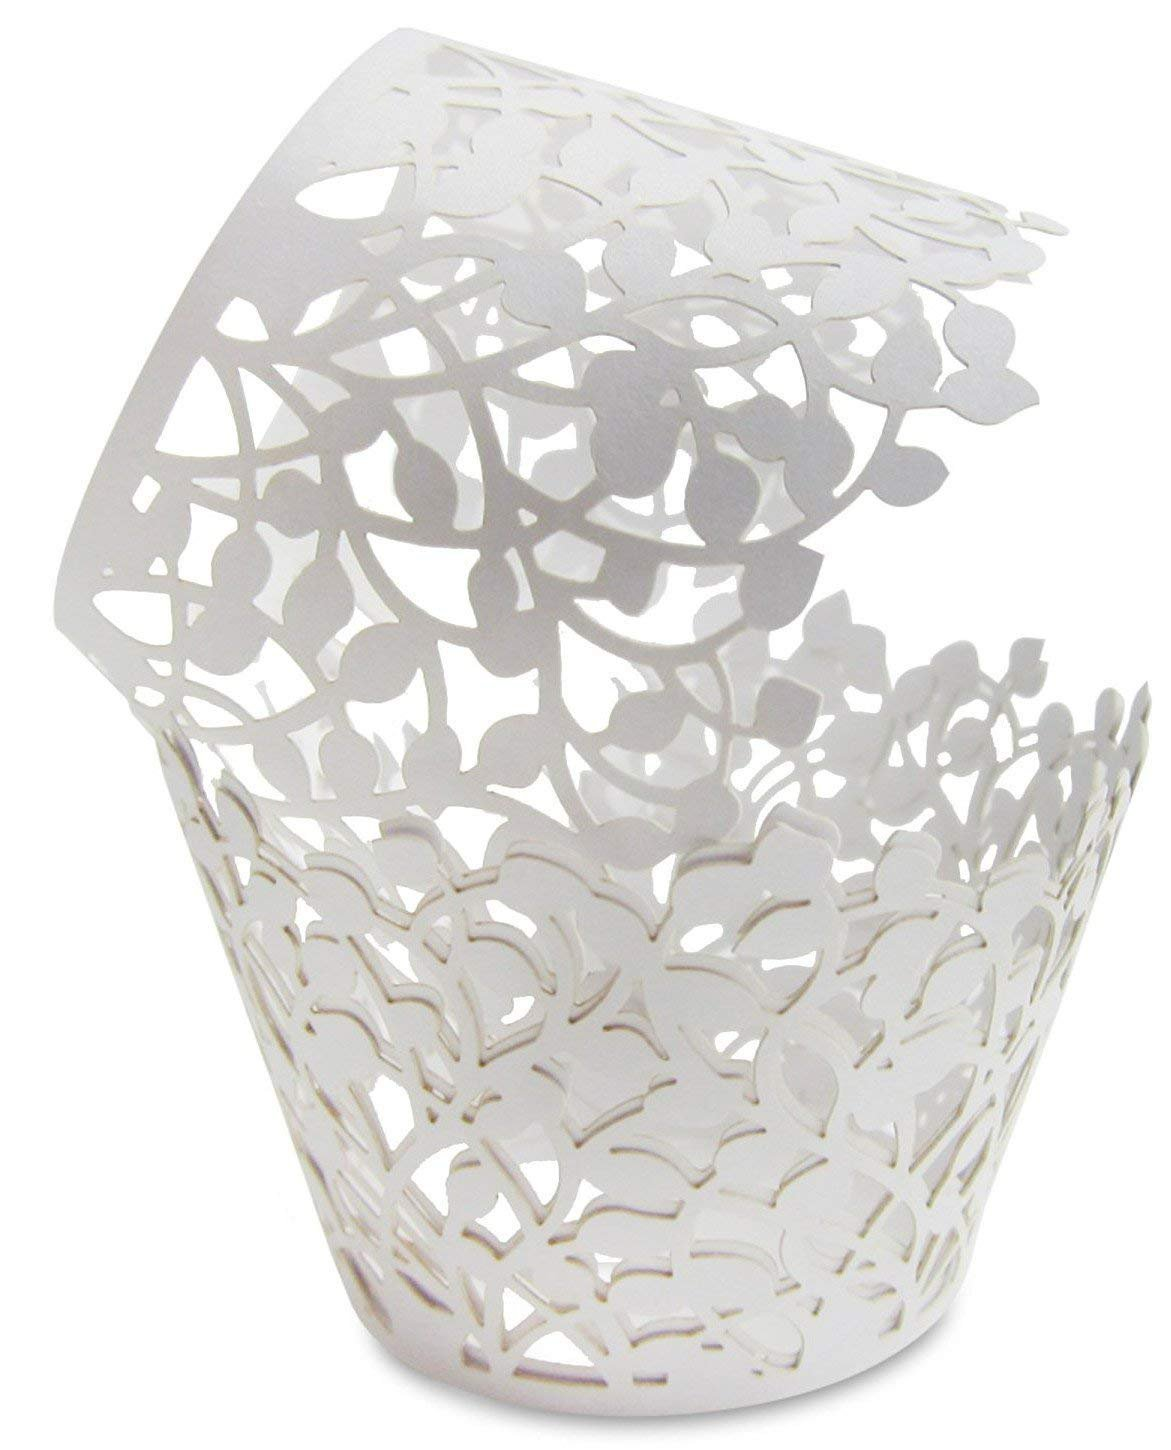 CUPCAKE WRAPPERS - 100 Pack White Shimmering Decorative Vine Lace Liner Wrapper - Versatile Design makes it perfect for Weddings Birthdays Tea Parties and any Special Event